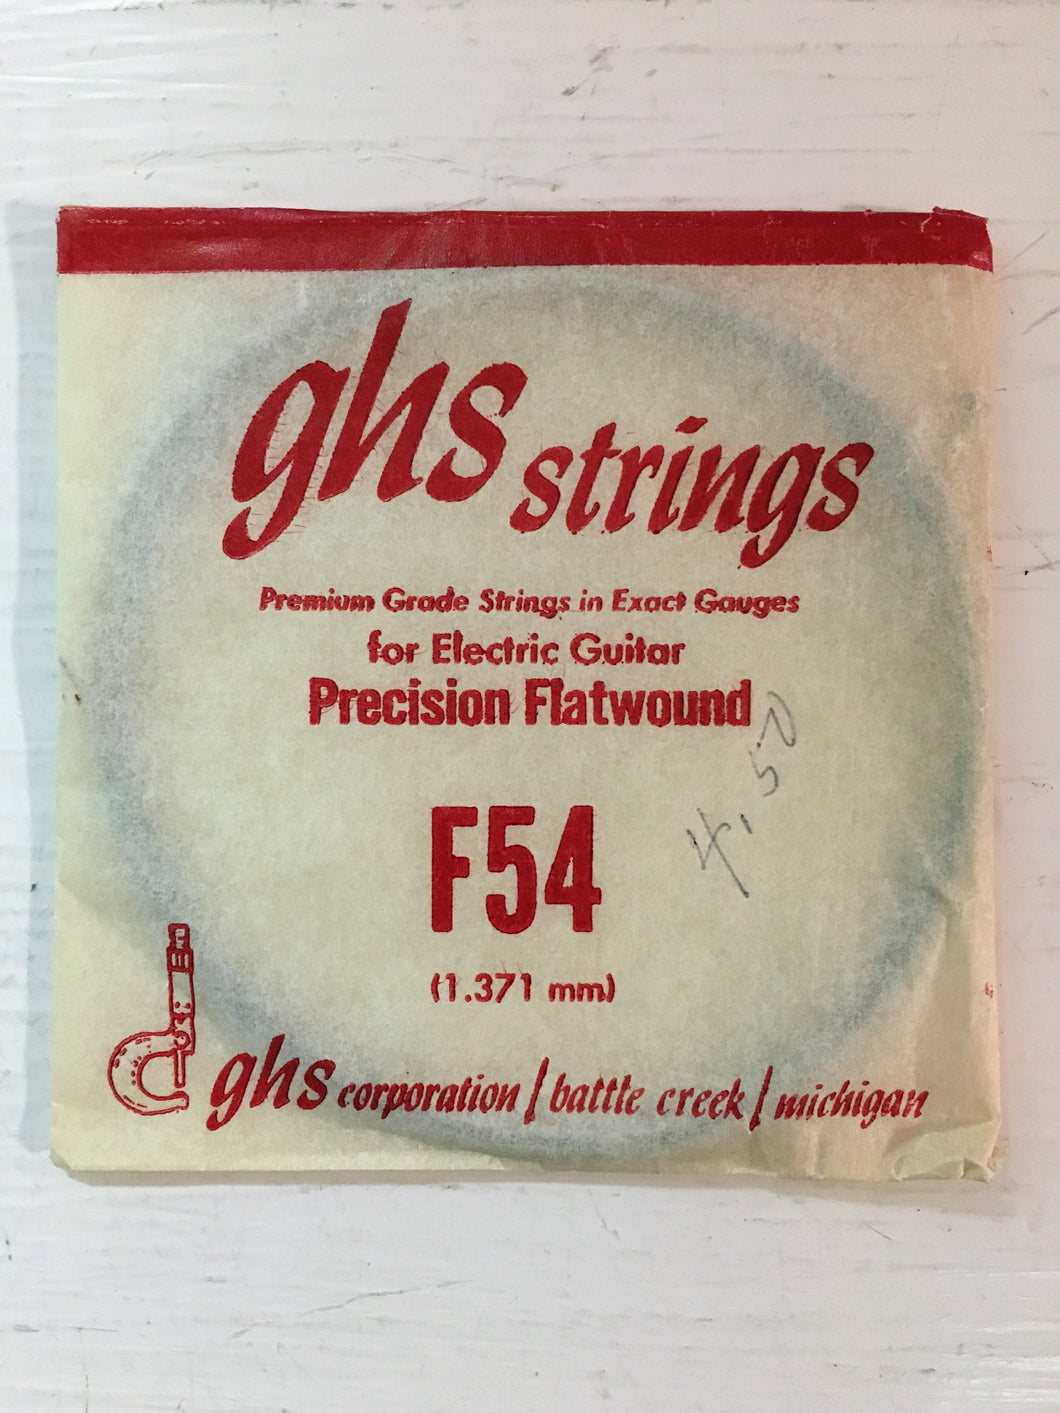 Electric Single Bass Strings - GHS Strings Precision Flatwound (1.371mm)